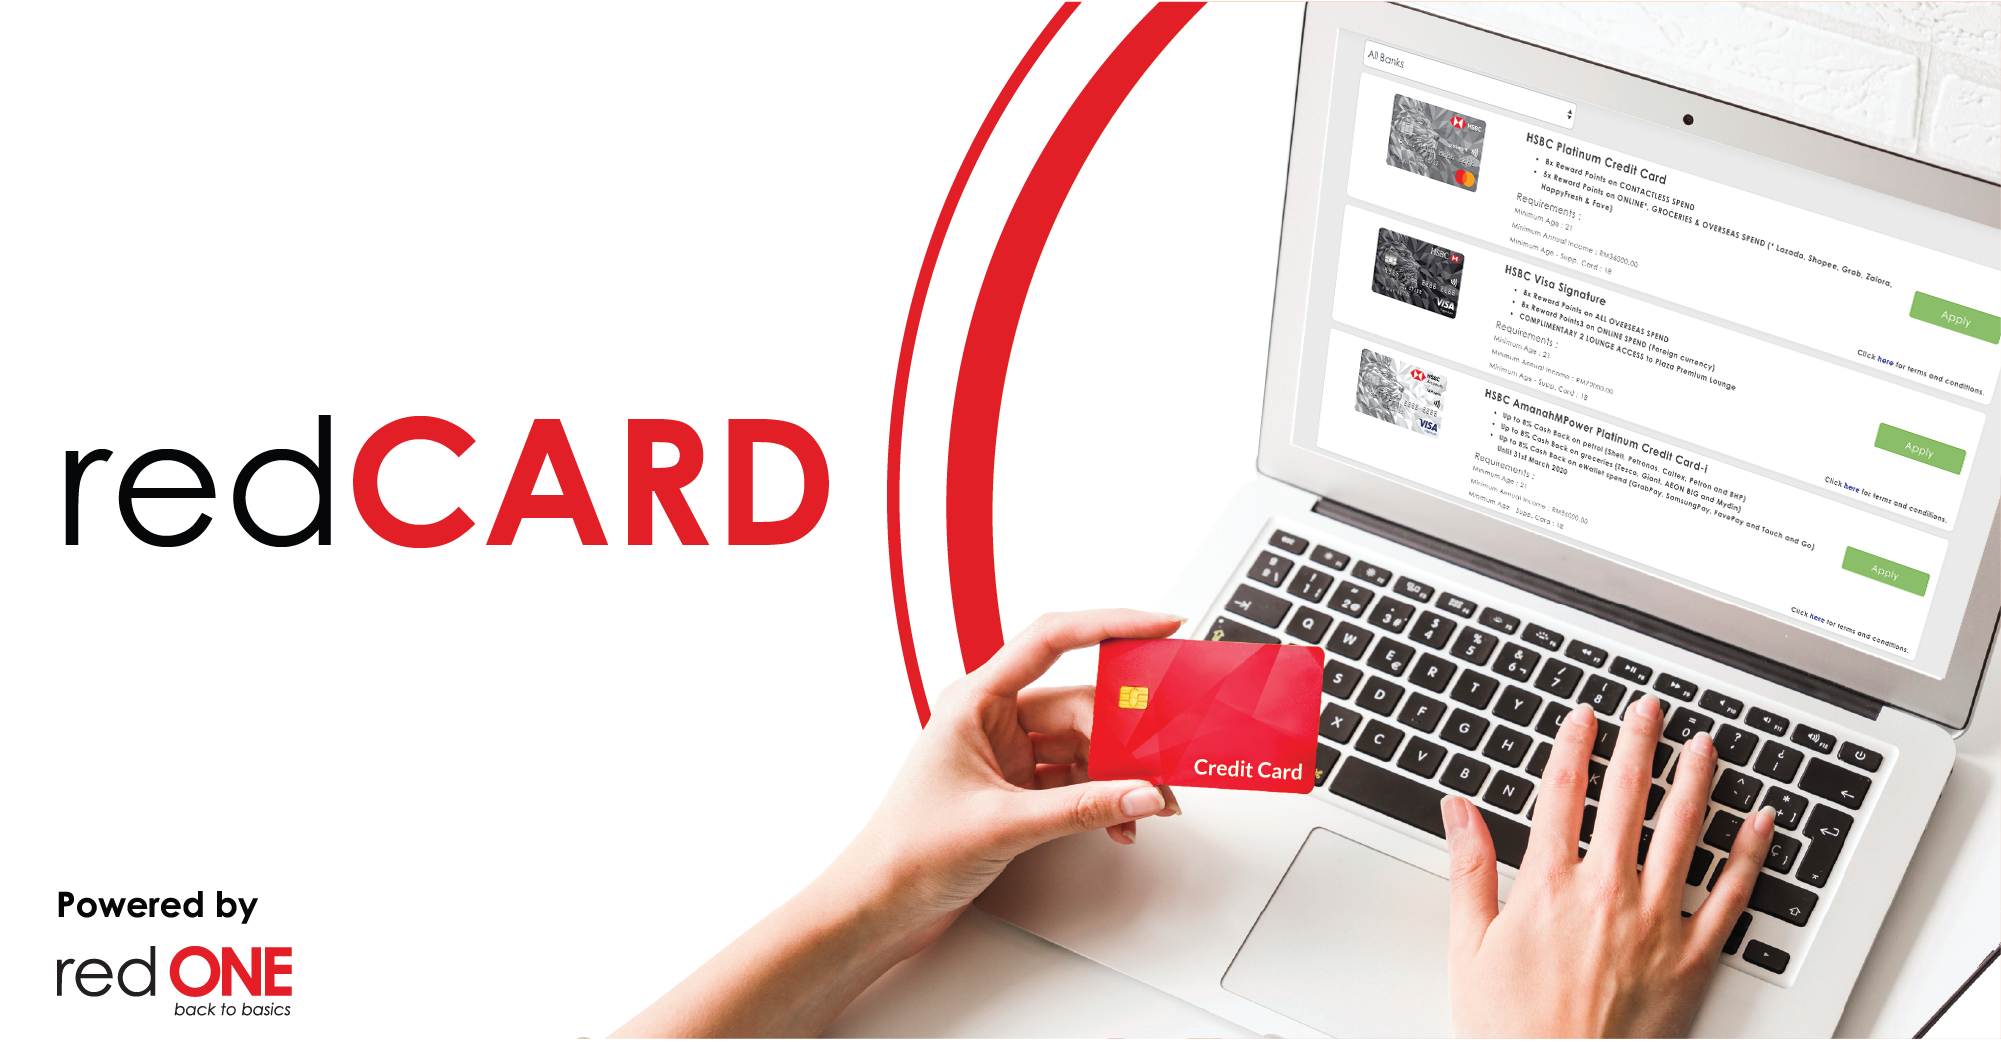 Sign up for a credit card and get cashback today.